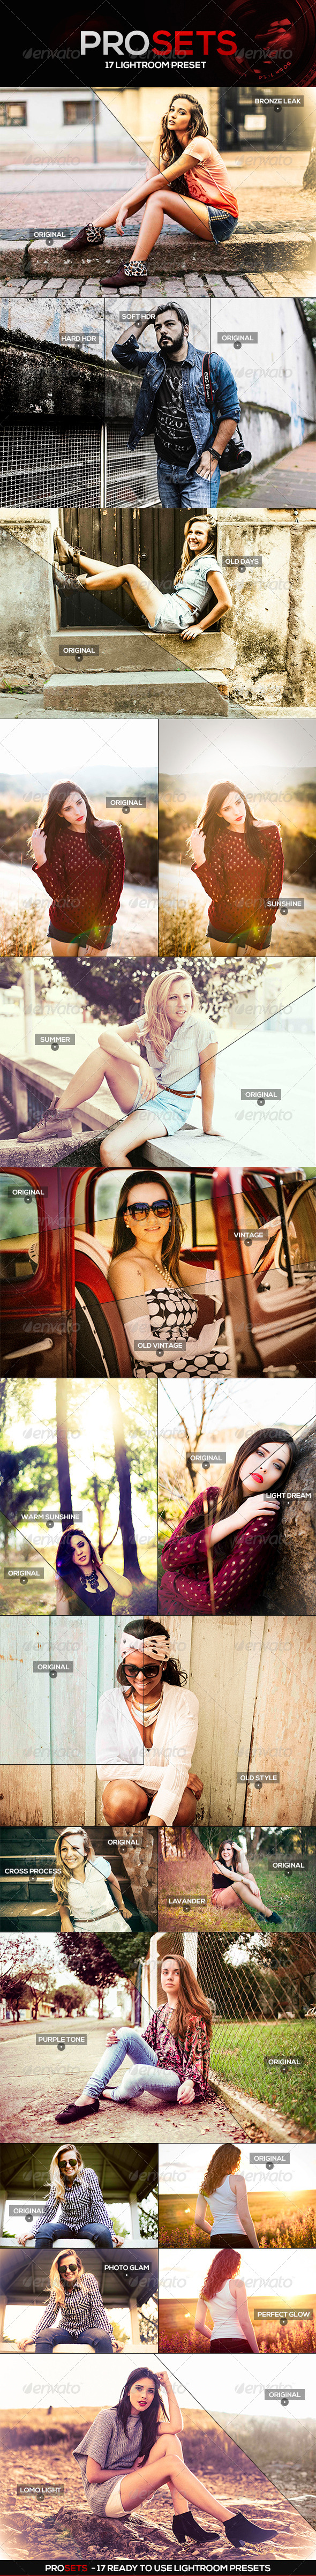 GraphicRiver PROSETS Lightroom Presets 4732275